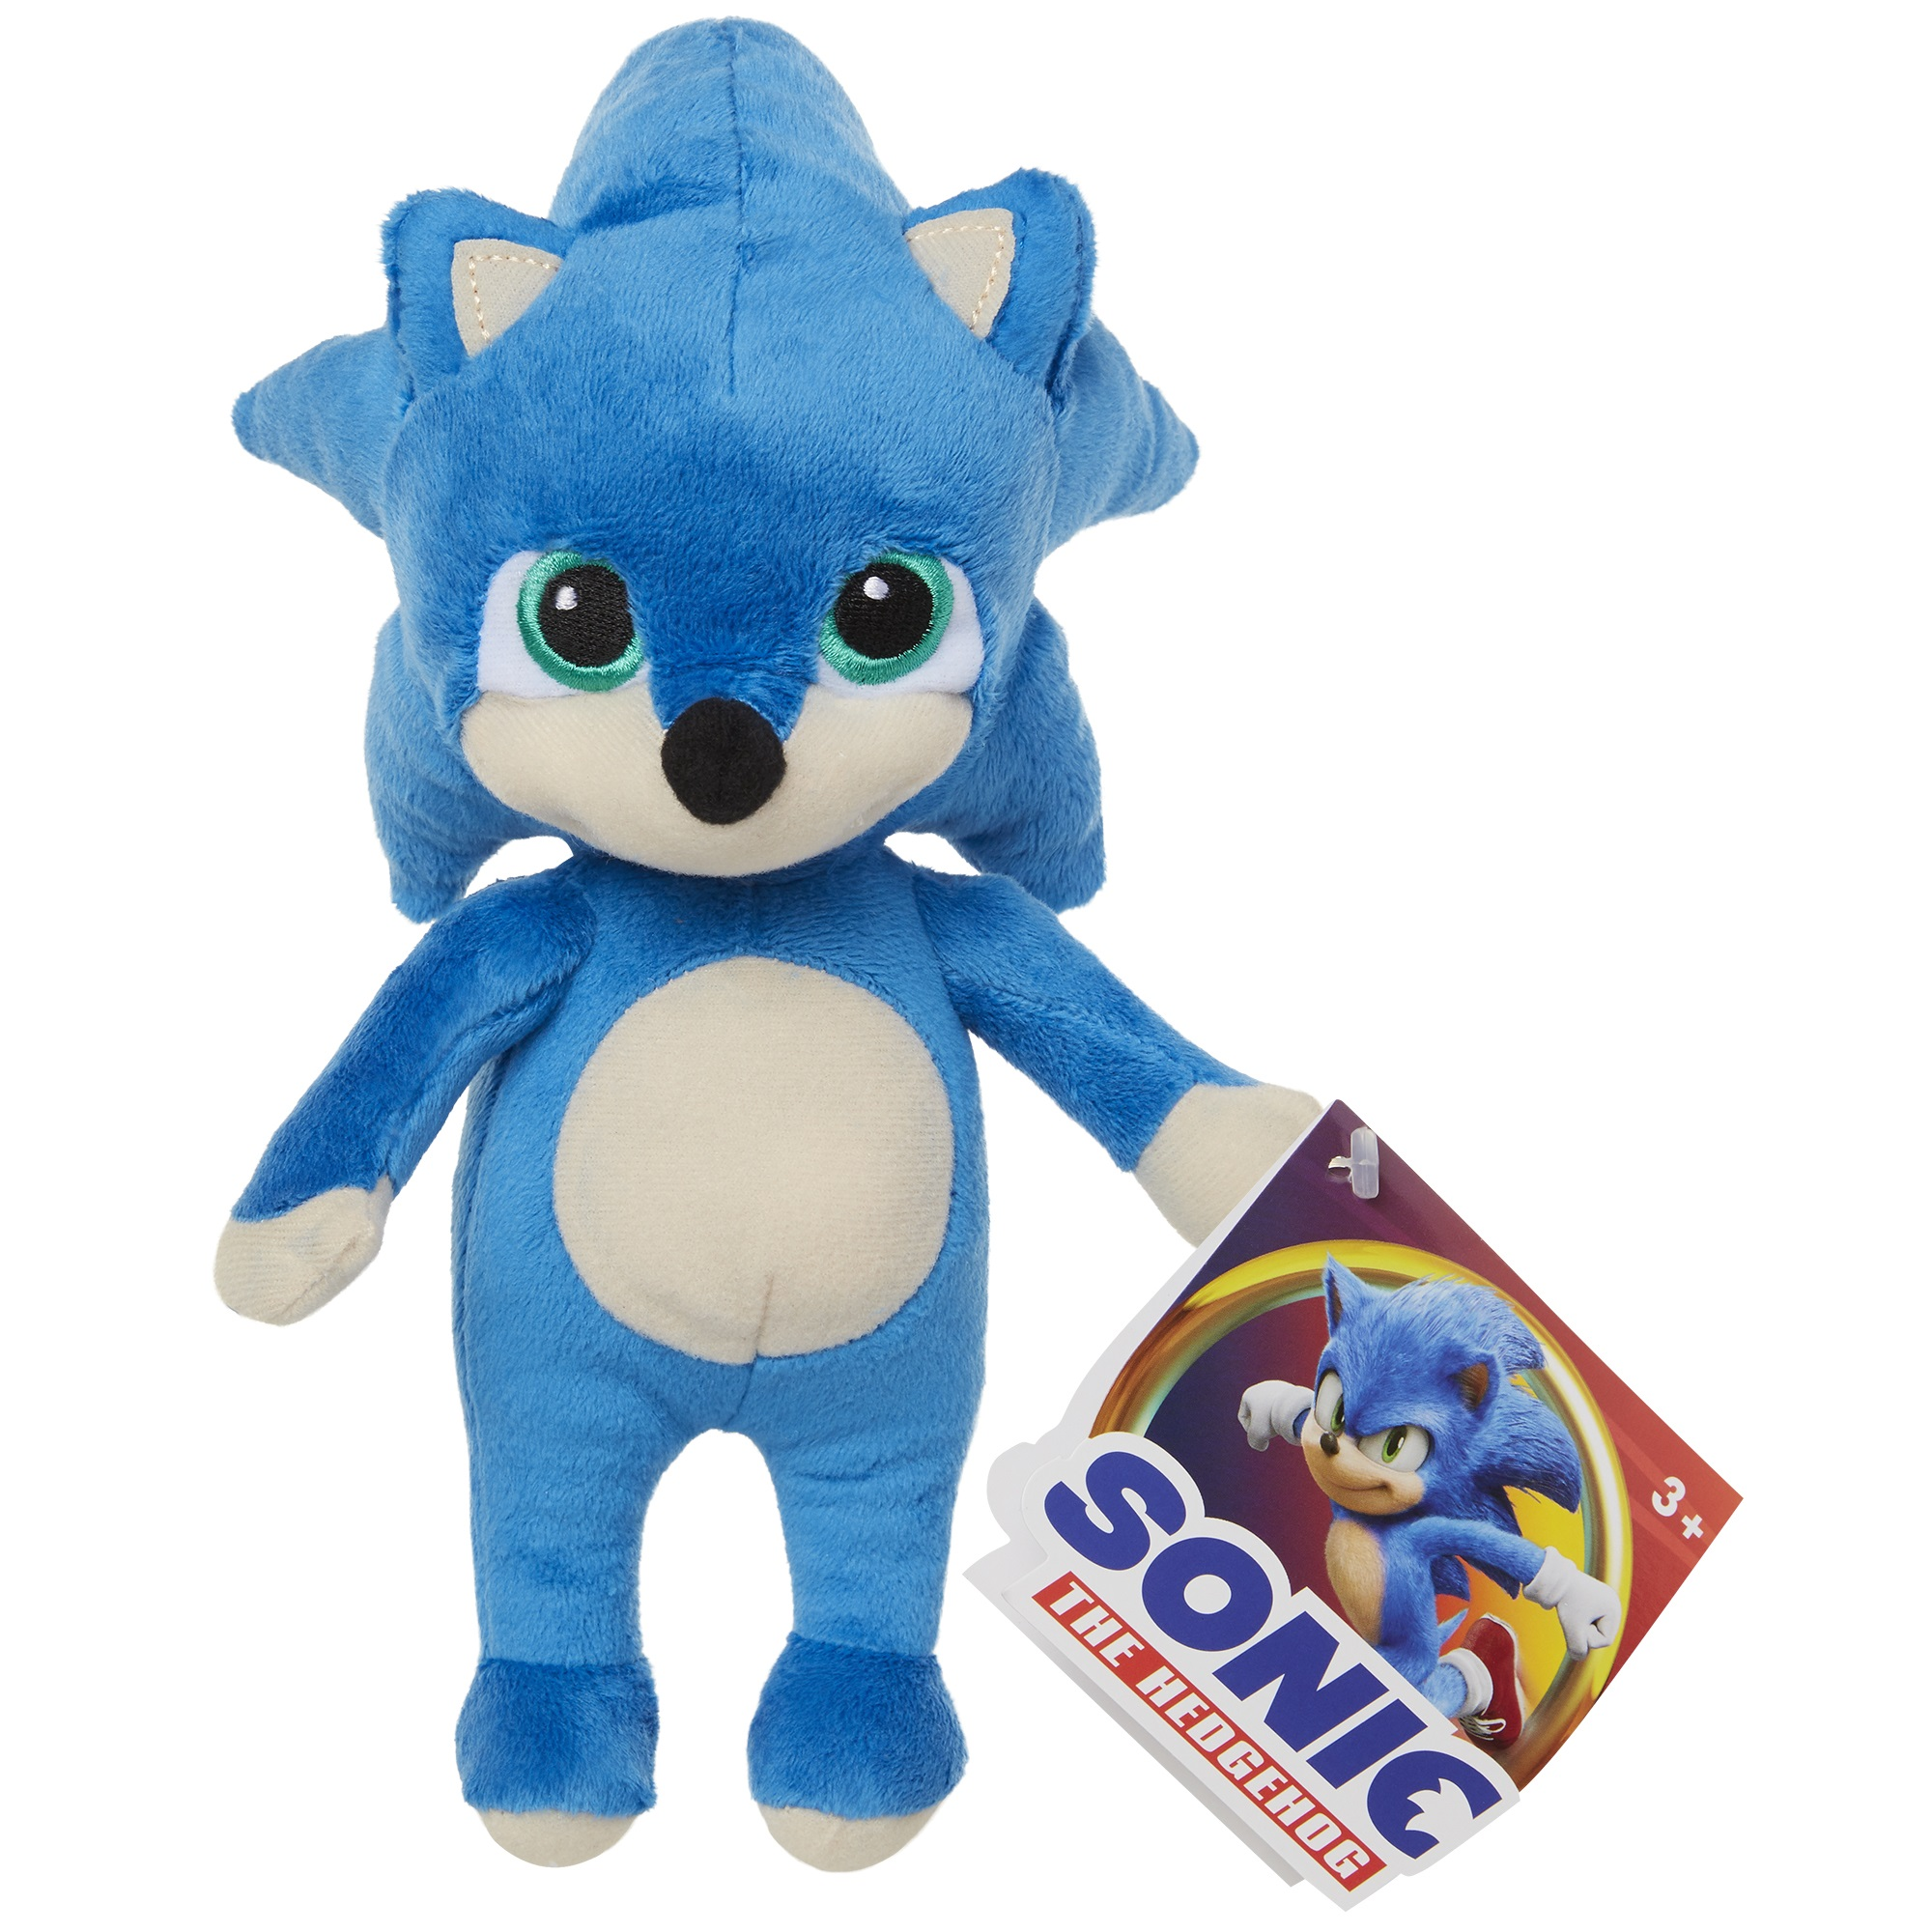 Revisiting All the Questions I Had About Baby Sonic